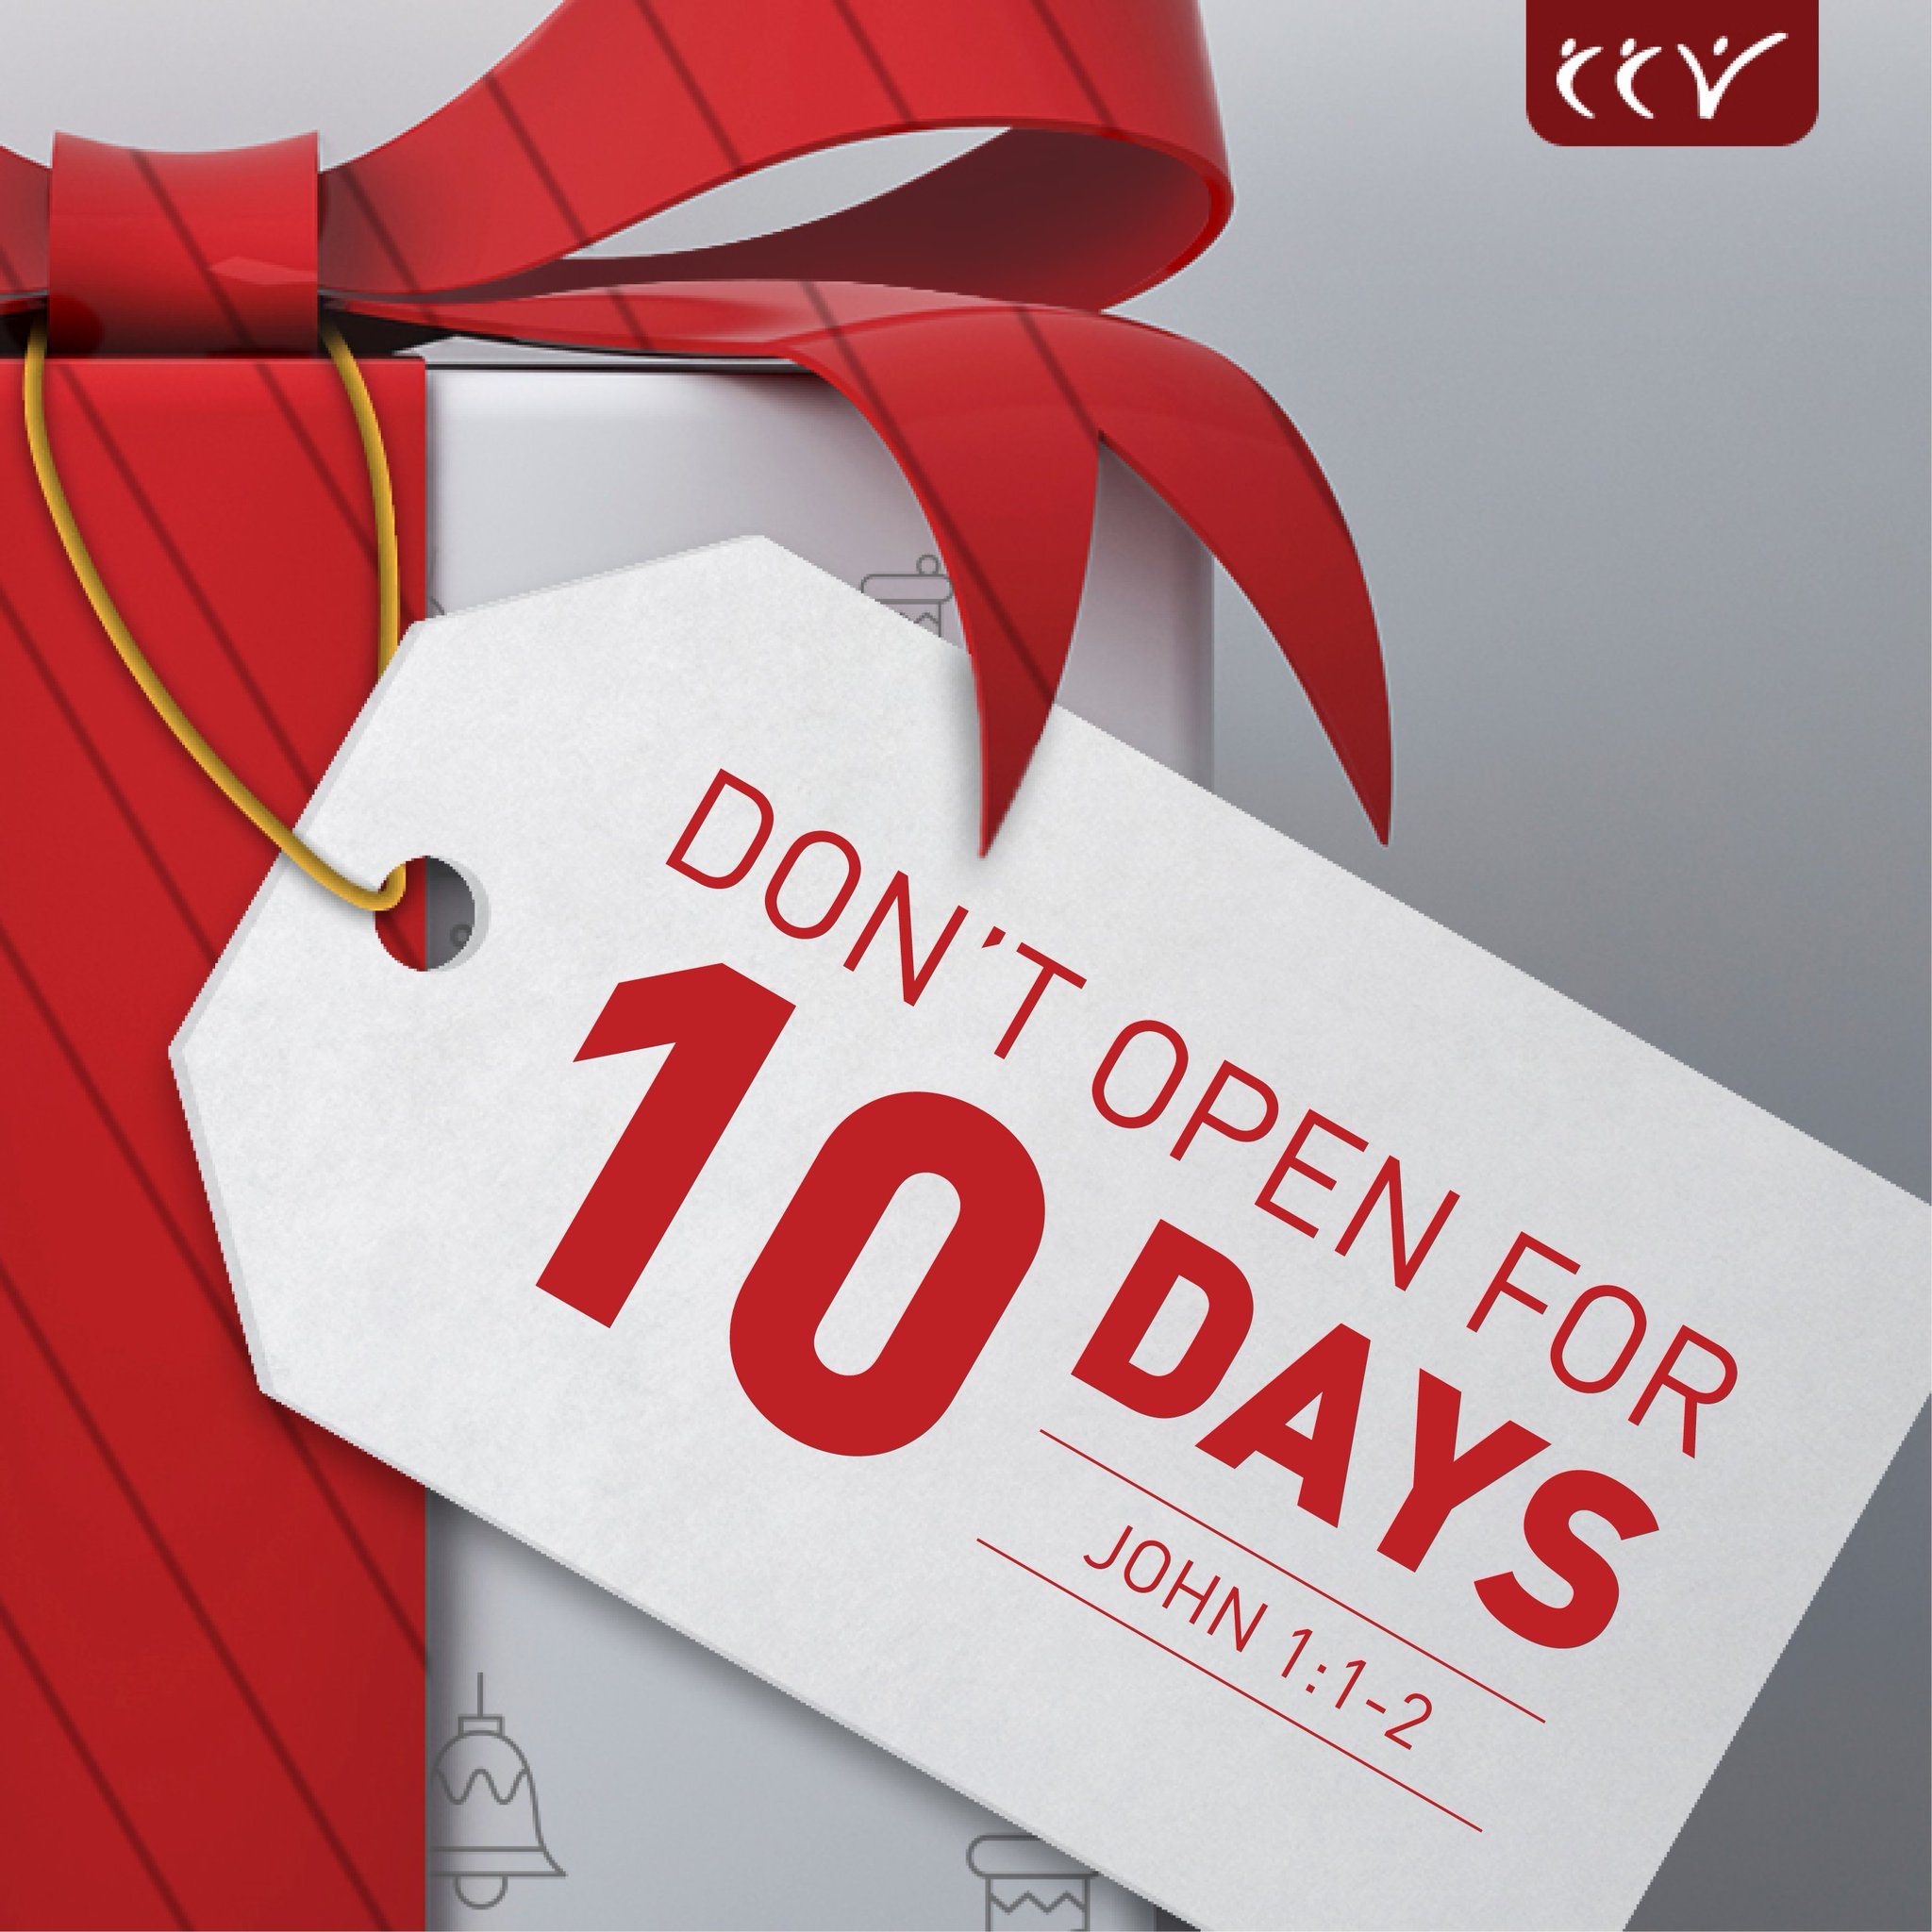 ccv on twitter 10 days until christmas eve services start at ccv join us as we unwrap the greatest gift httpstcottofozz1cv httpstcoupmvzzramc - Ccv Christmas Services